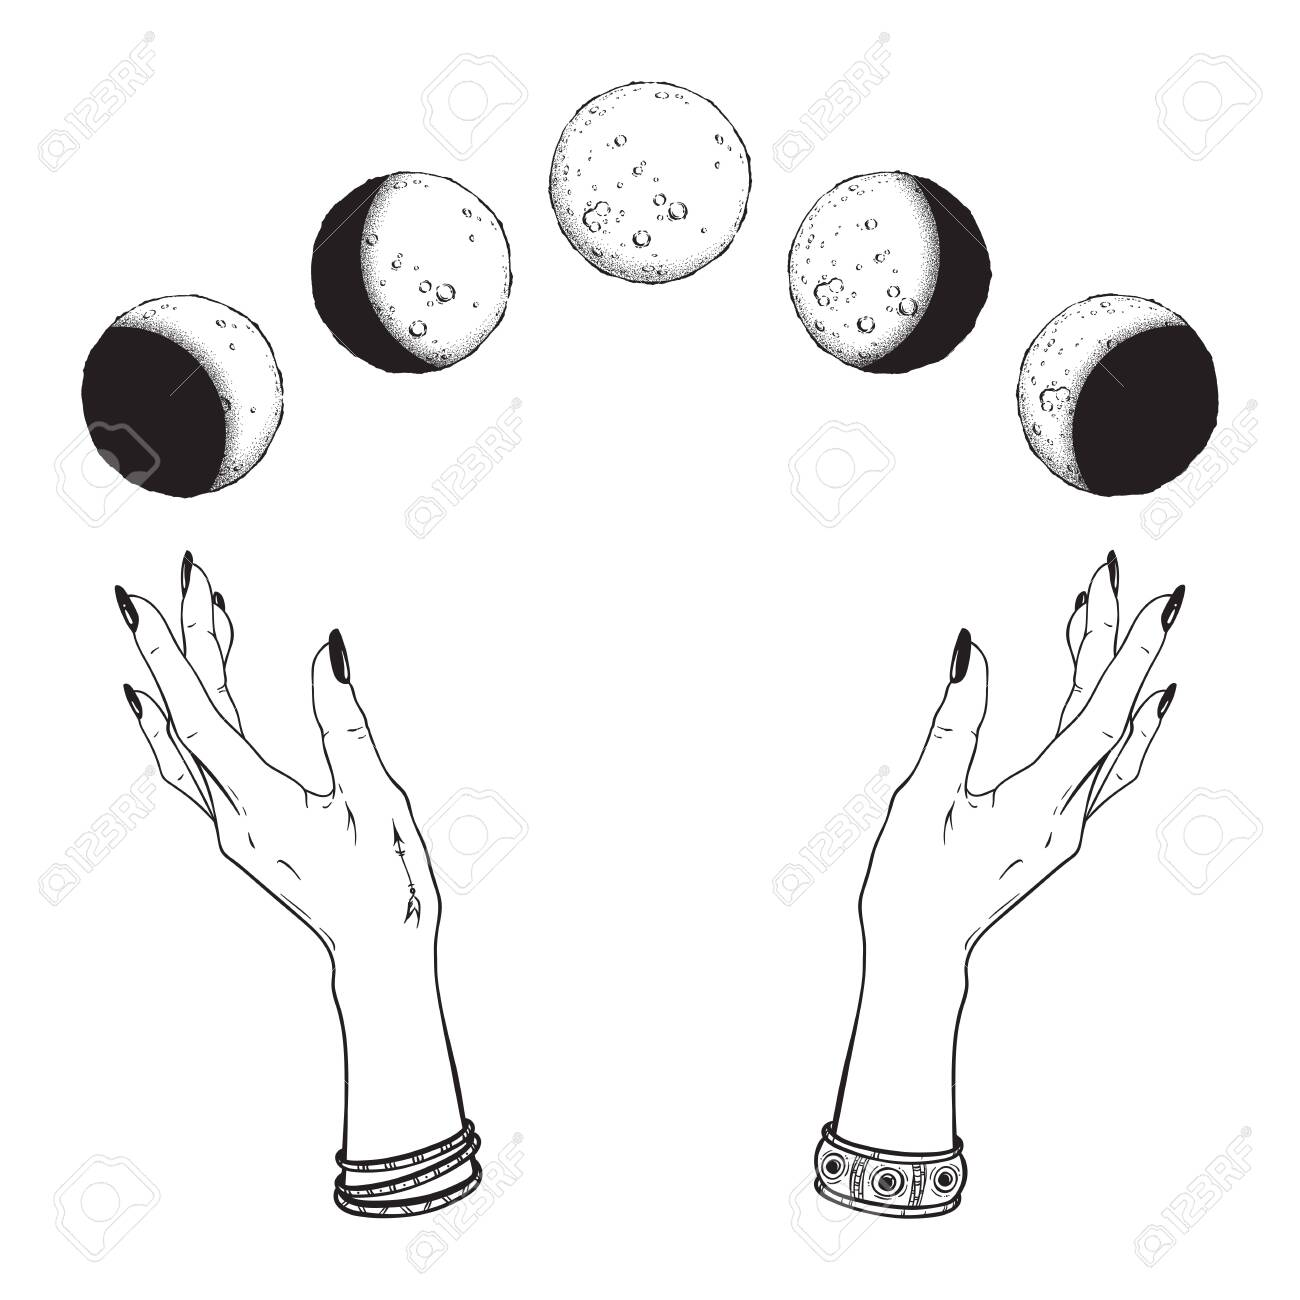 Hand drawn line art and dot work moon phases in hands of witch isolated. Boho chic flash tattoo, poster, altar veil or tapestry print design vector illustration - 124019012